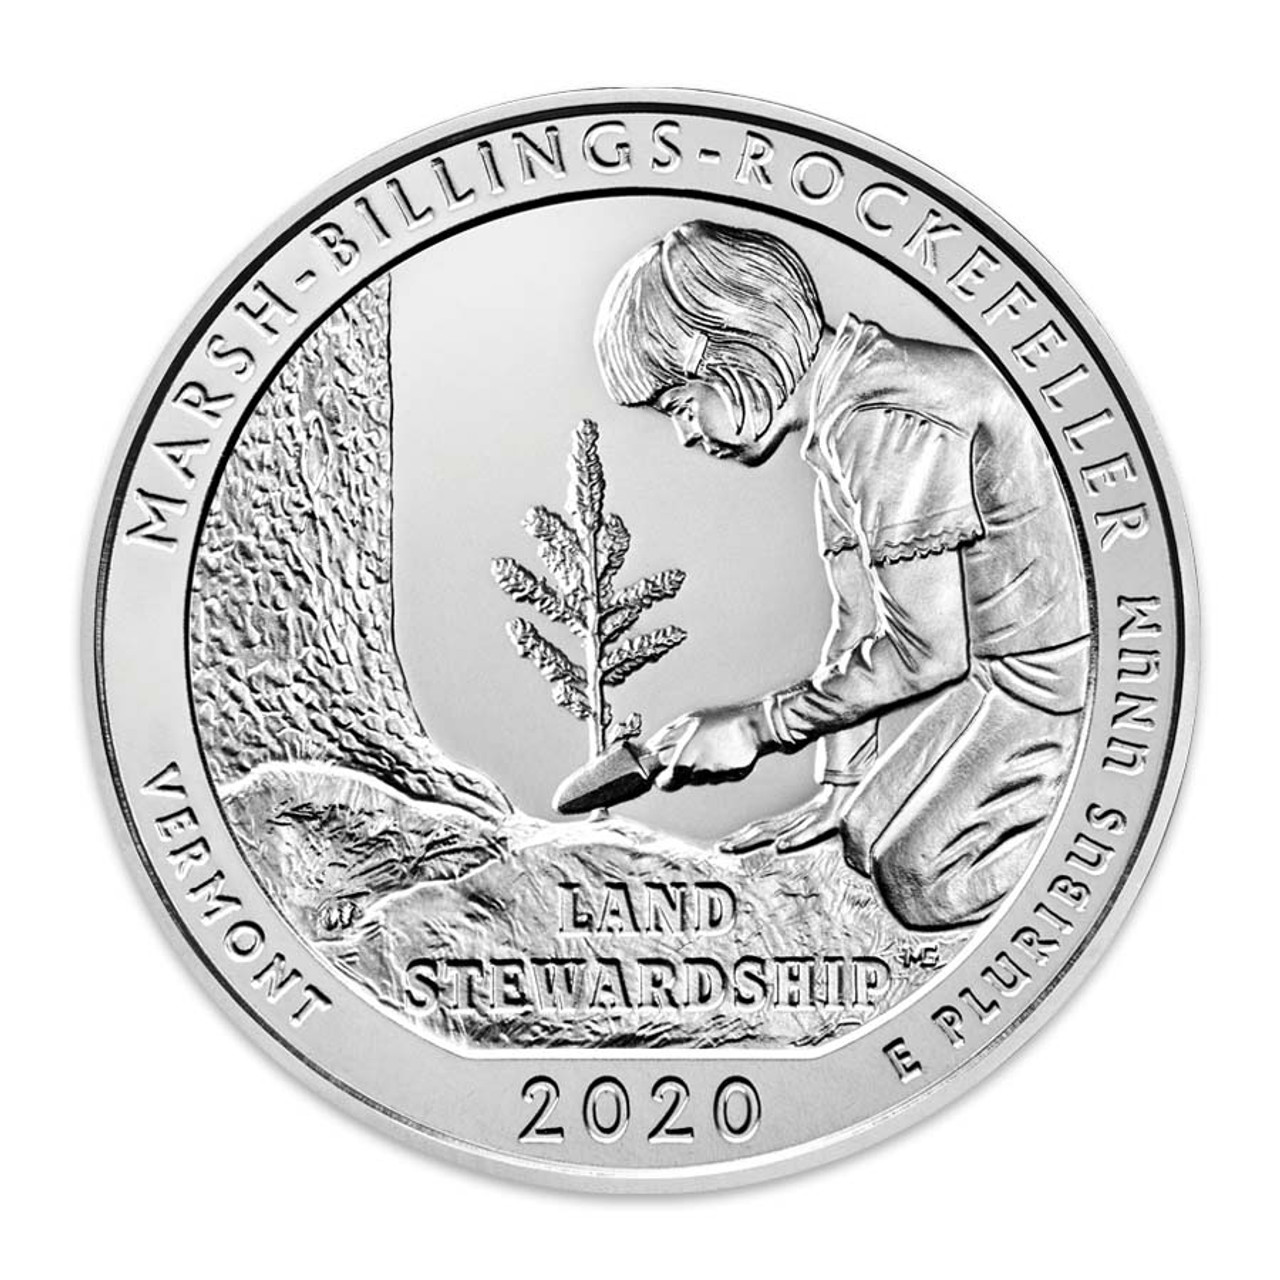 2020-D Marsh-Billings-Rockefeller National Historical Park Quarter Brilliant Uncirculated Image 1